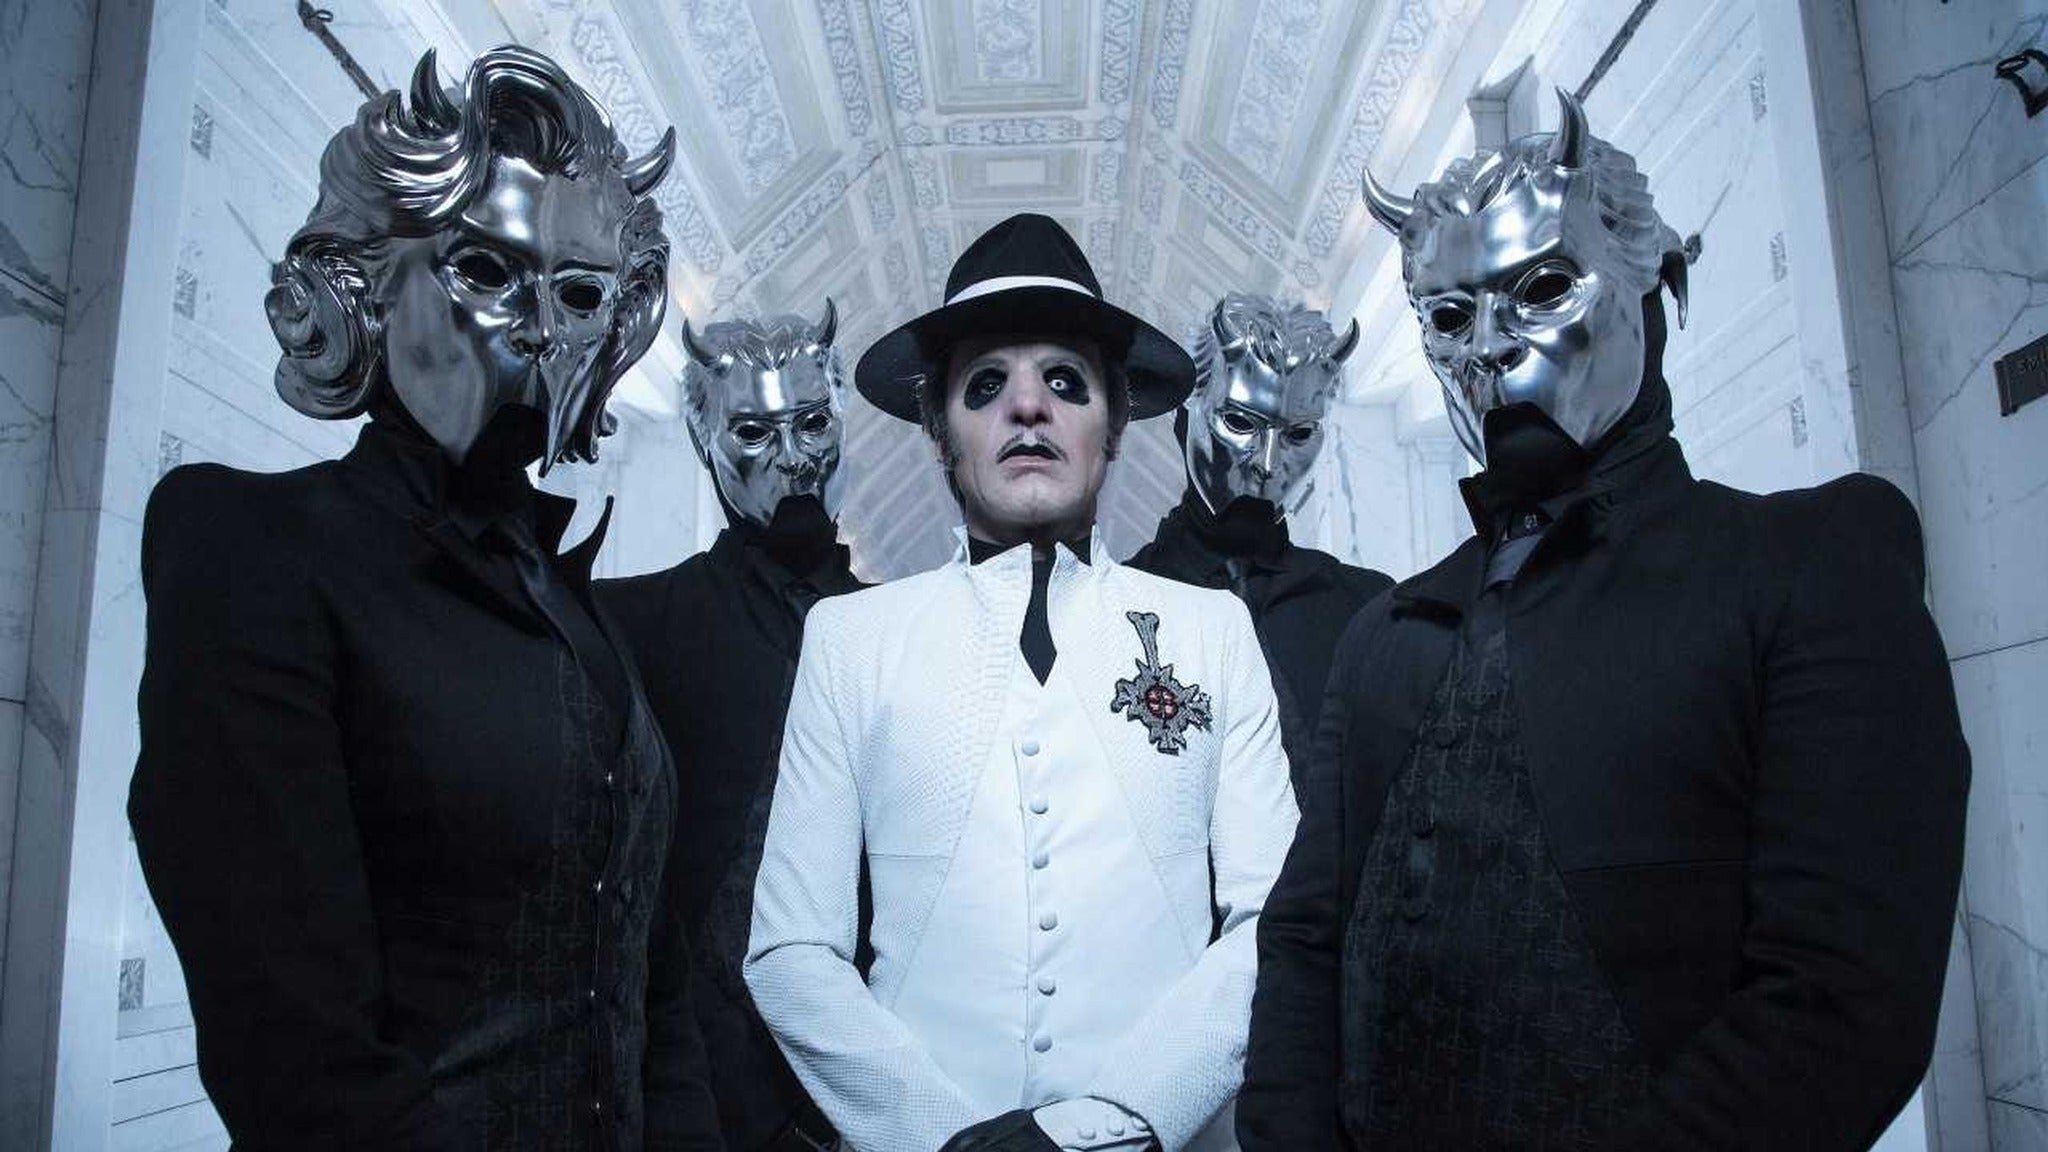 KFMW Rock 108 Presents GHOST - The Ultimate Tour Name Death